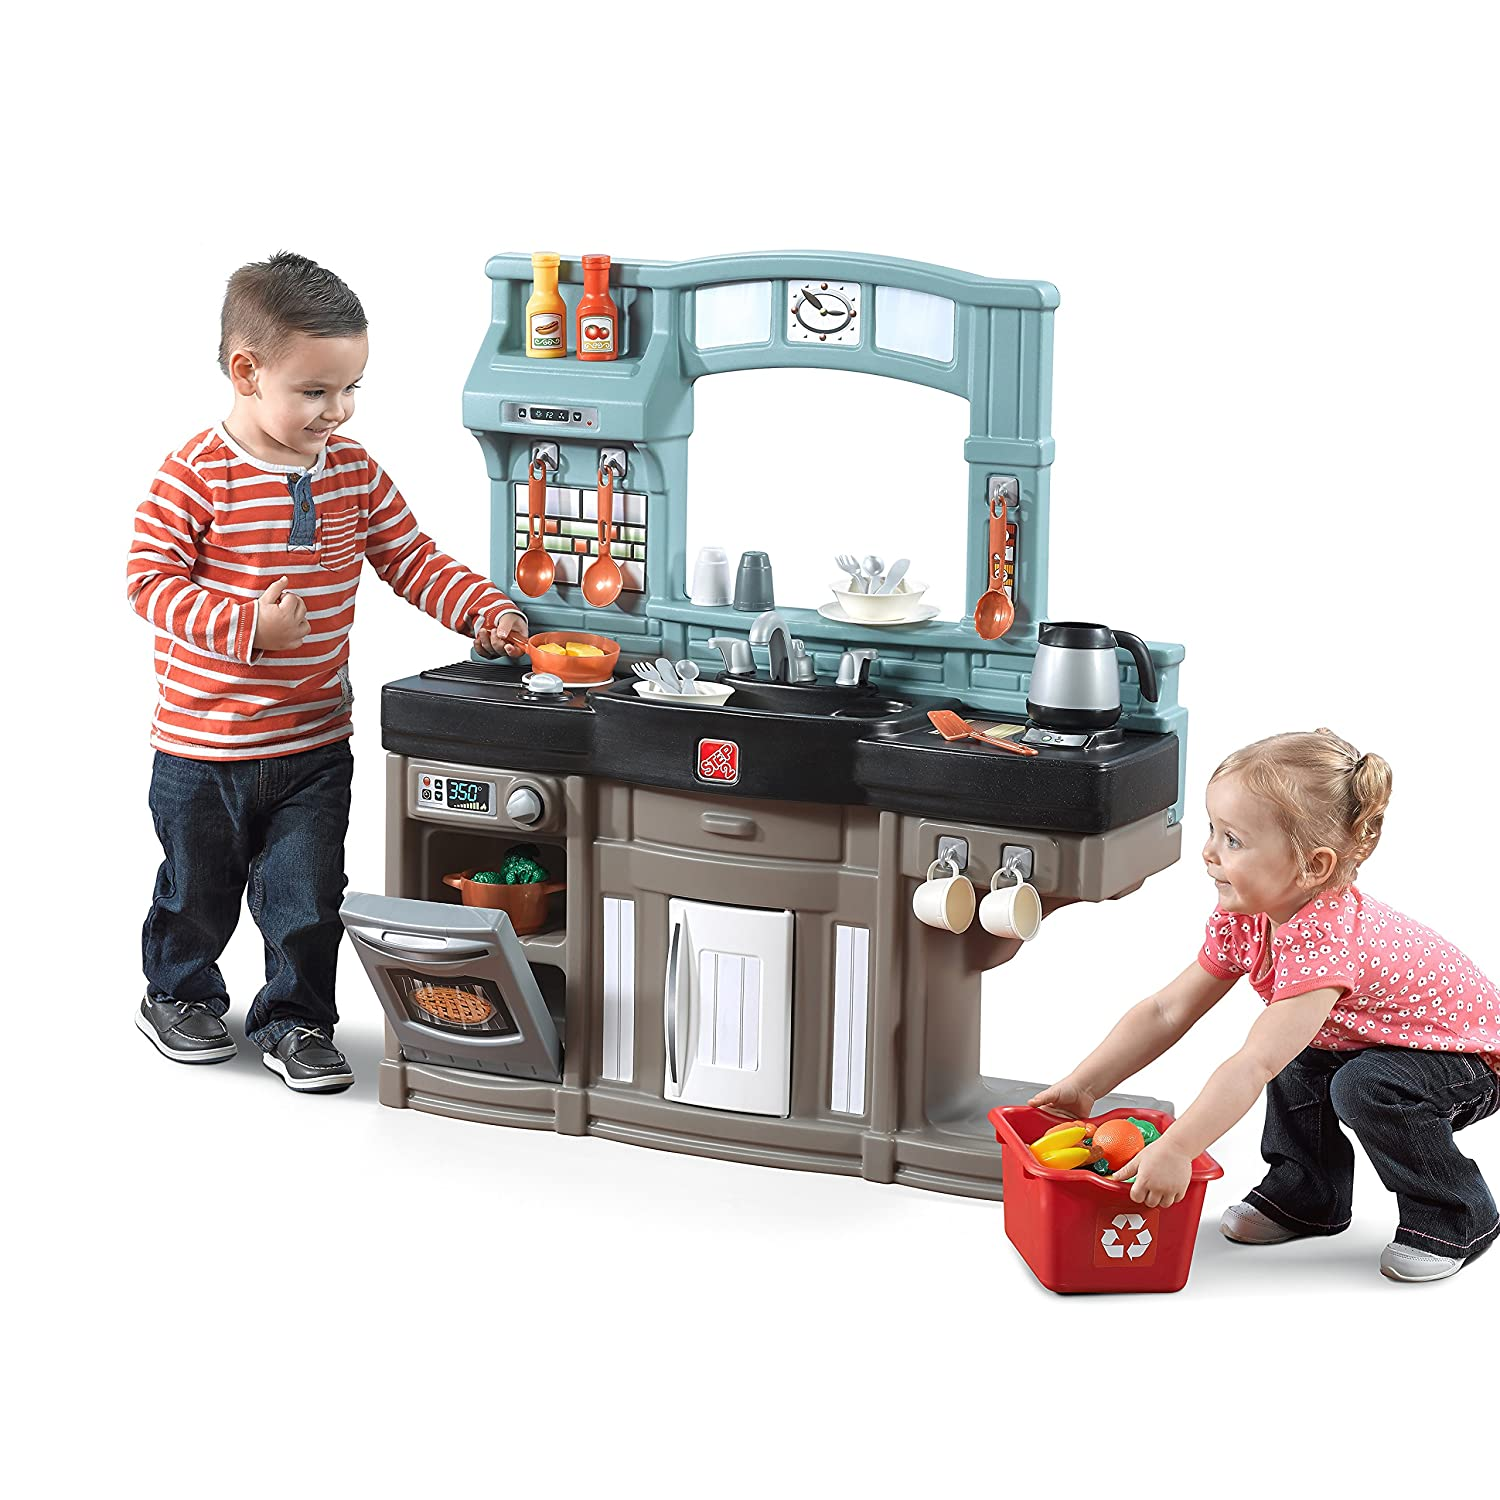 Amazon Step2 Best Chef s Toy Kitchen Playset Toys & Games